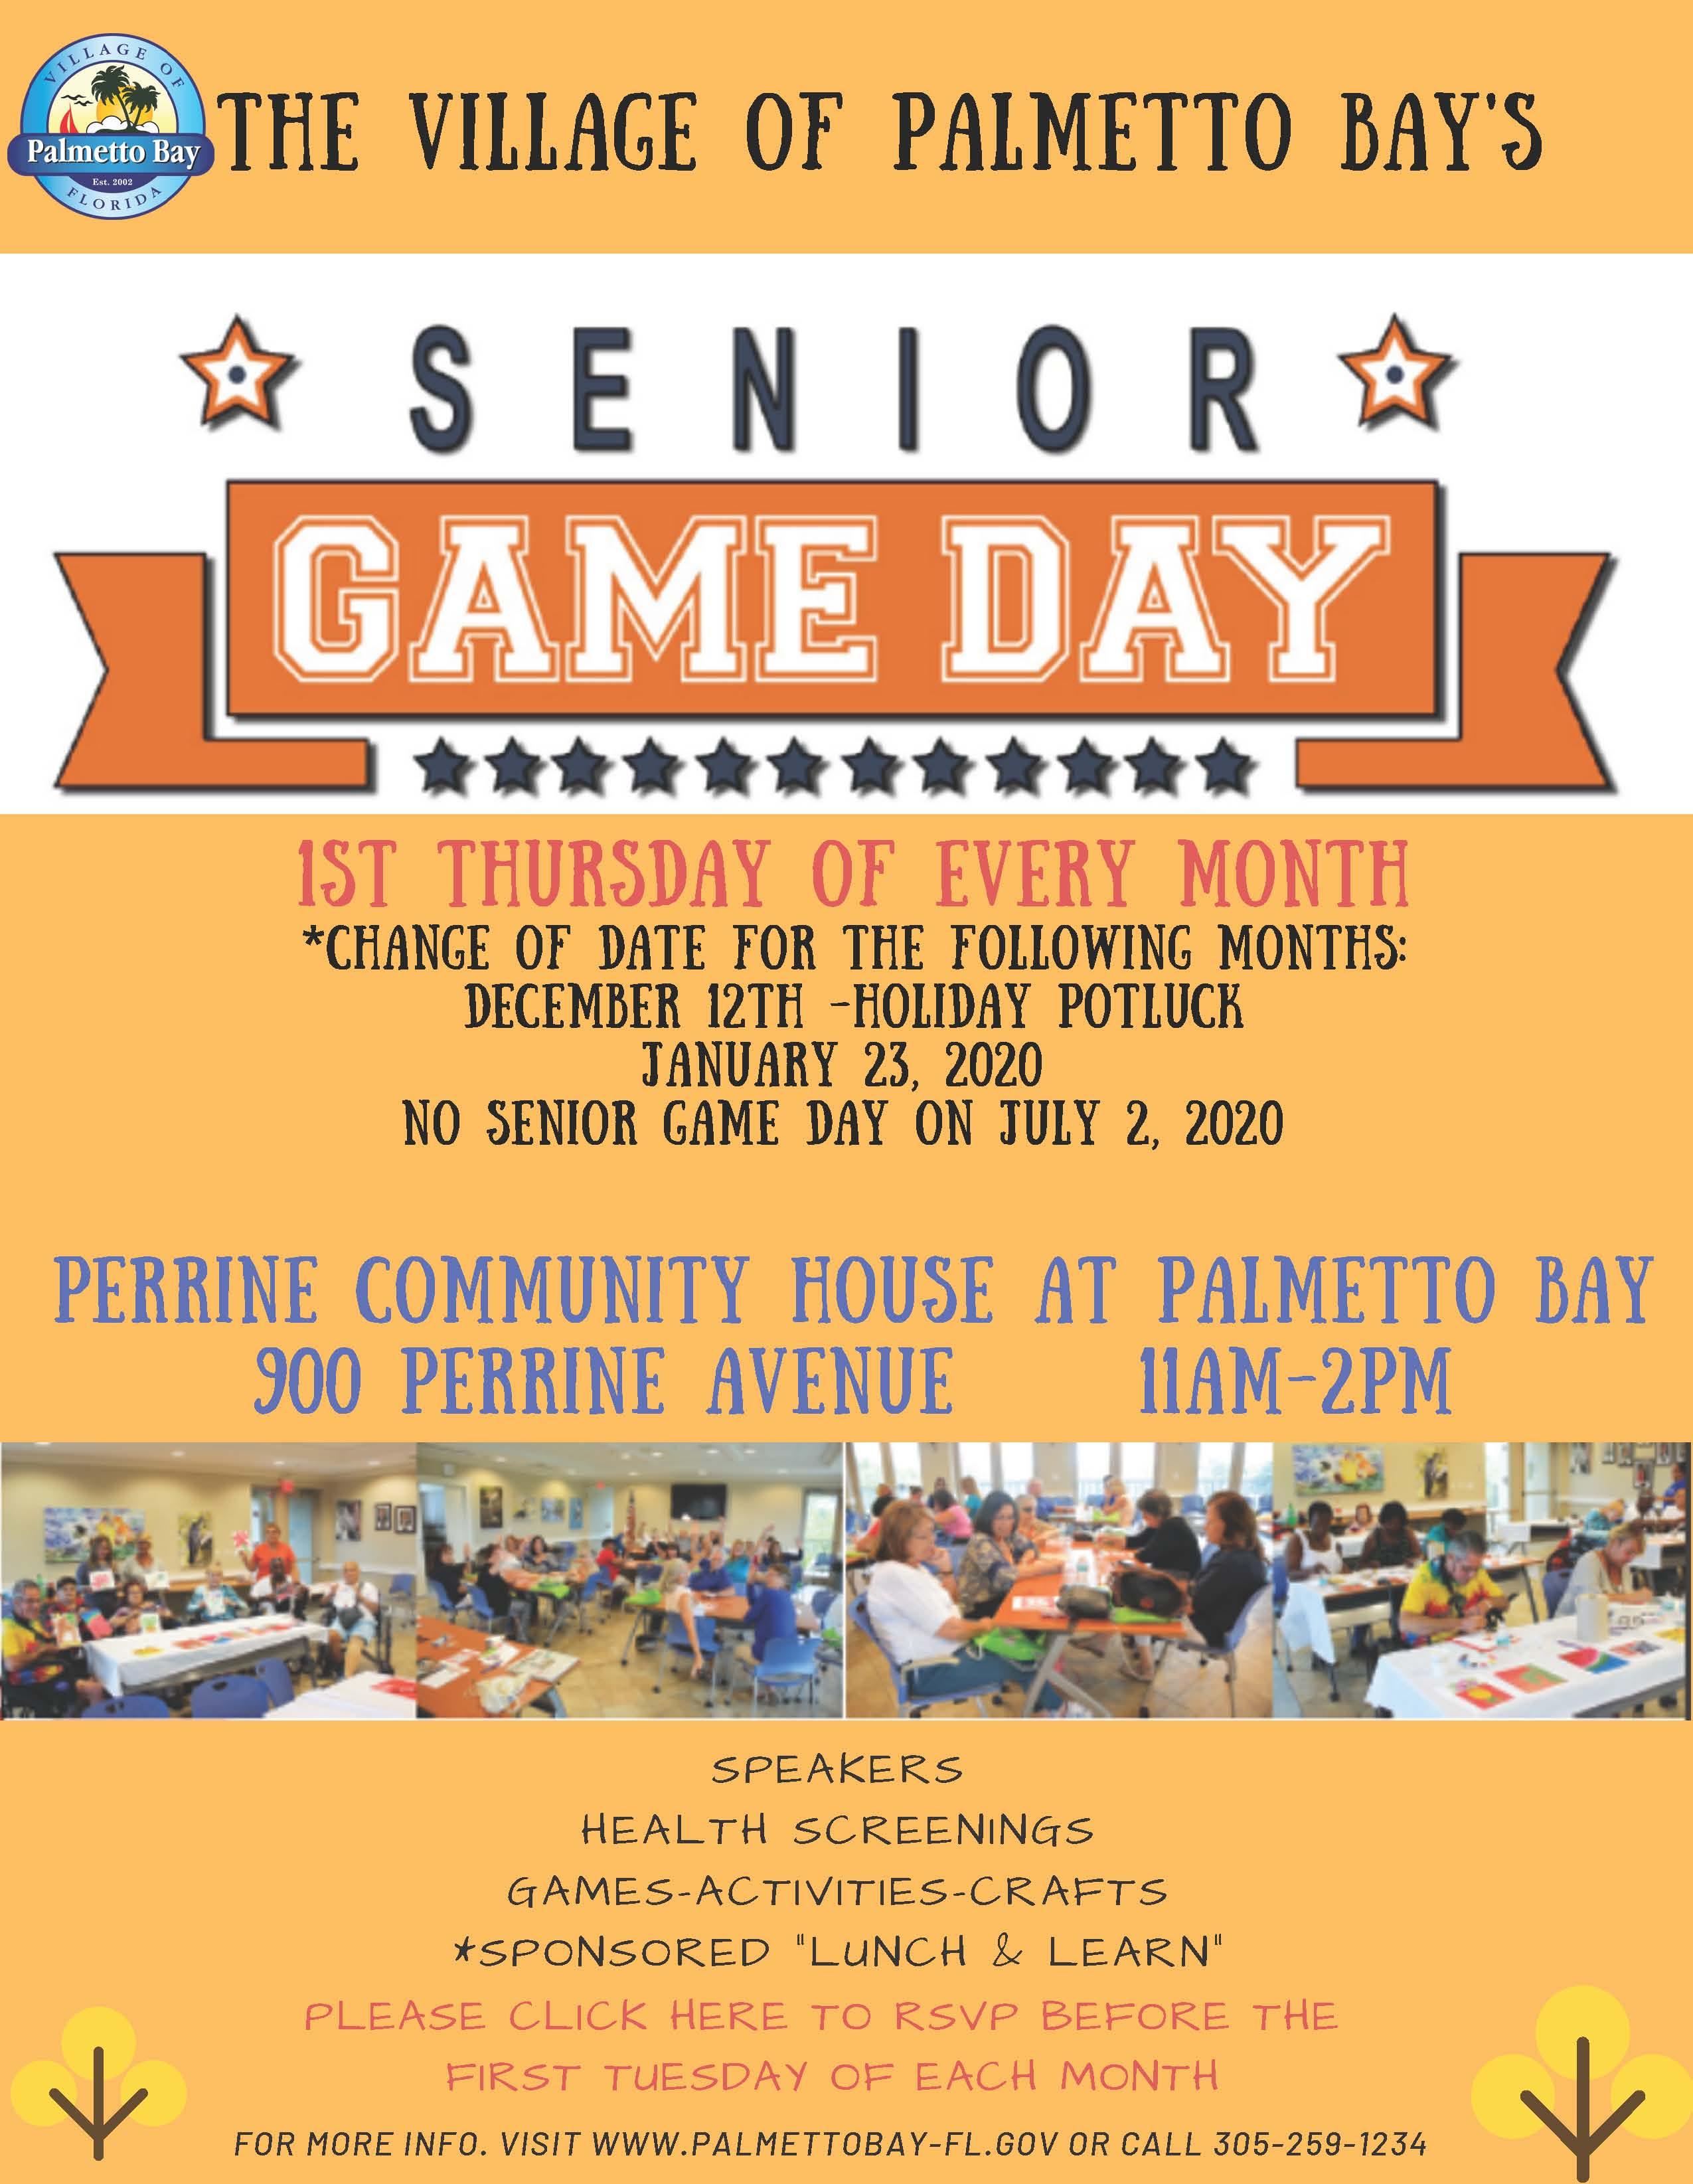 Senior Game Day, First Thursday of every month except December, January and No Game Day in July at P